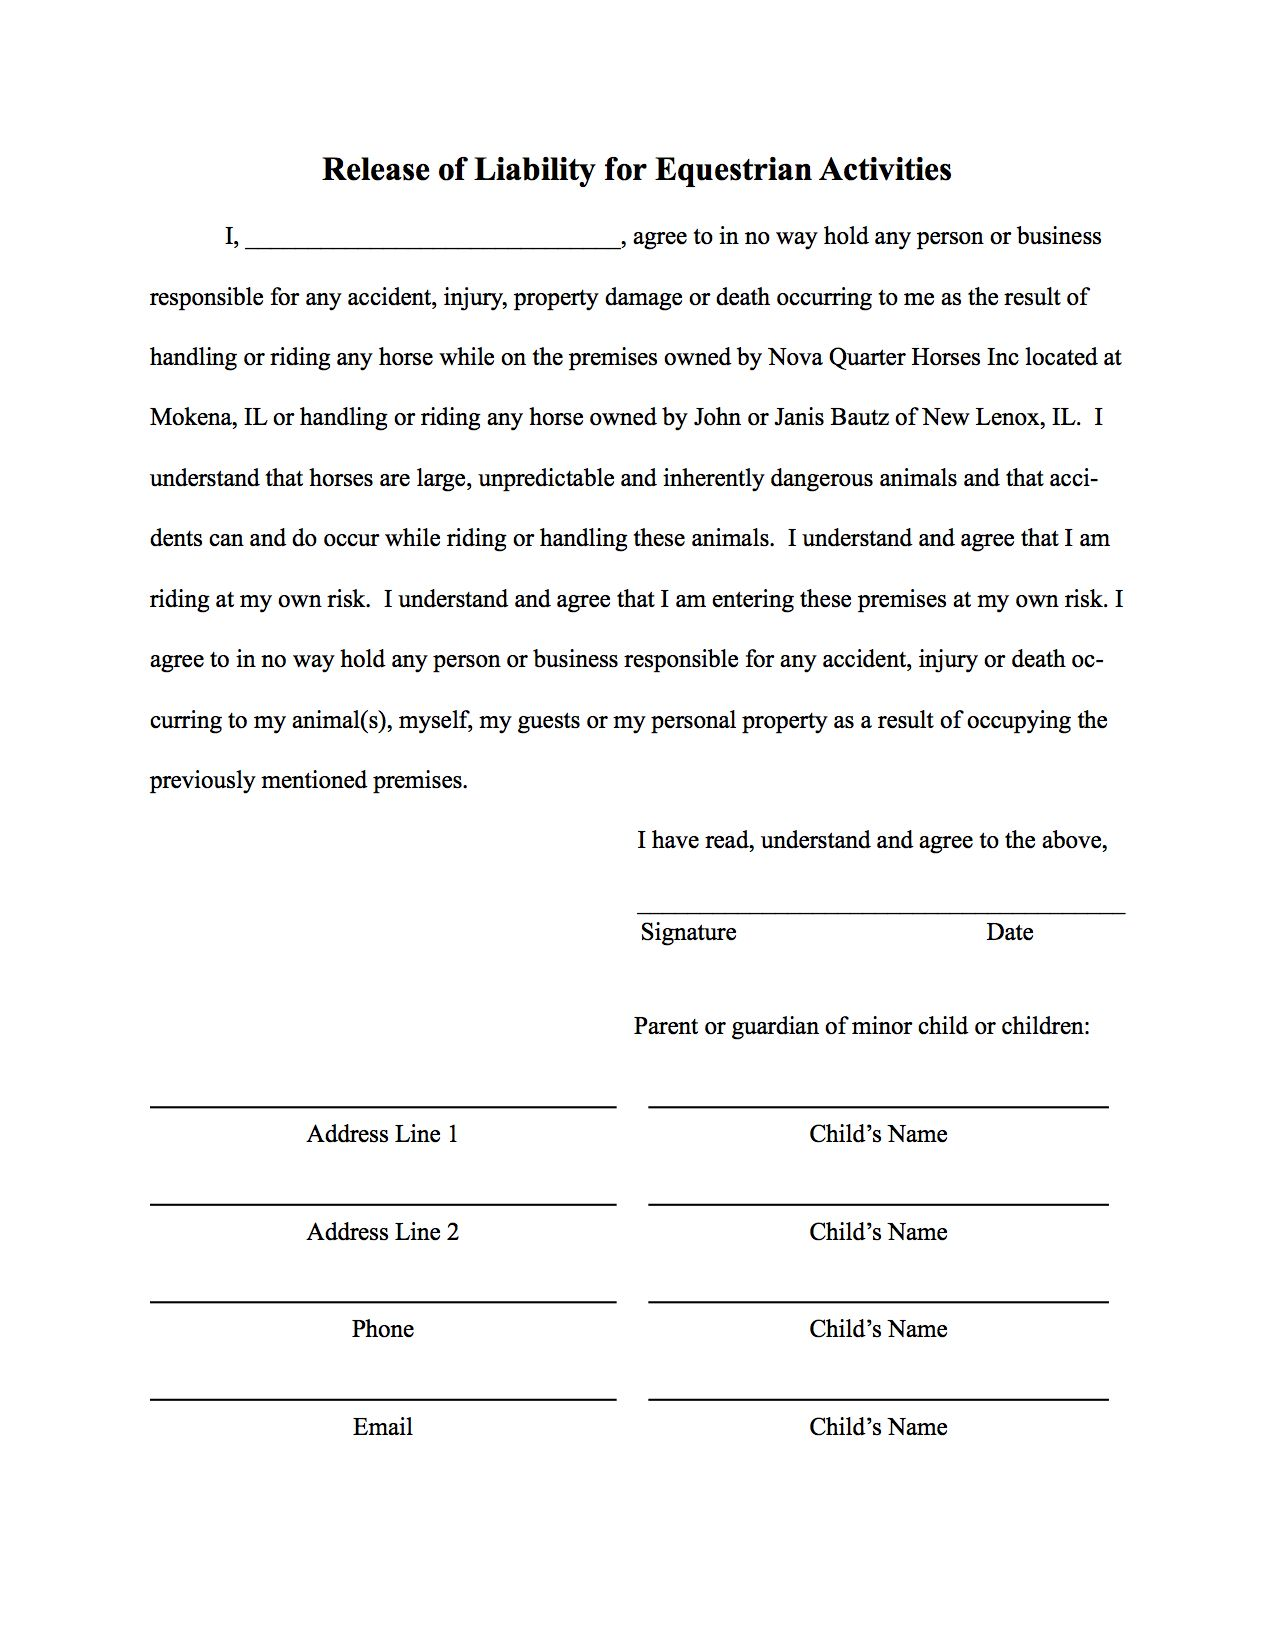 Superb Liability Waiver Form Template Release Of Liability Form Waiver Of Liability  Template With Sample, Liability Waiver Template Free Word Templates  Liability, ...  General Waiver Liability Form